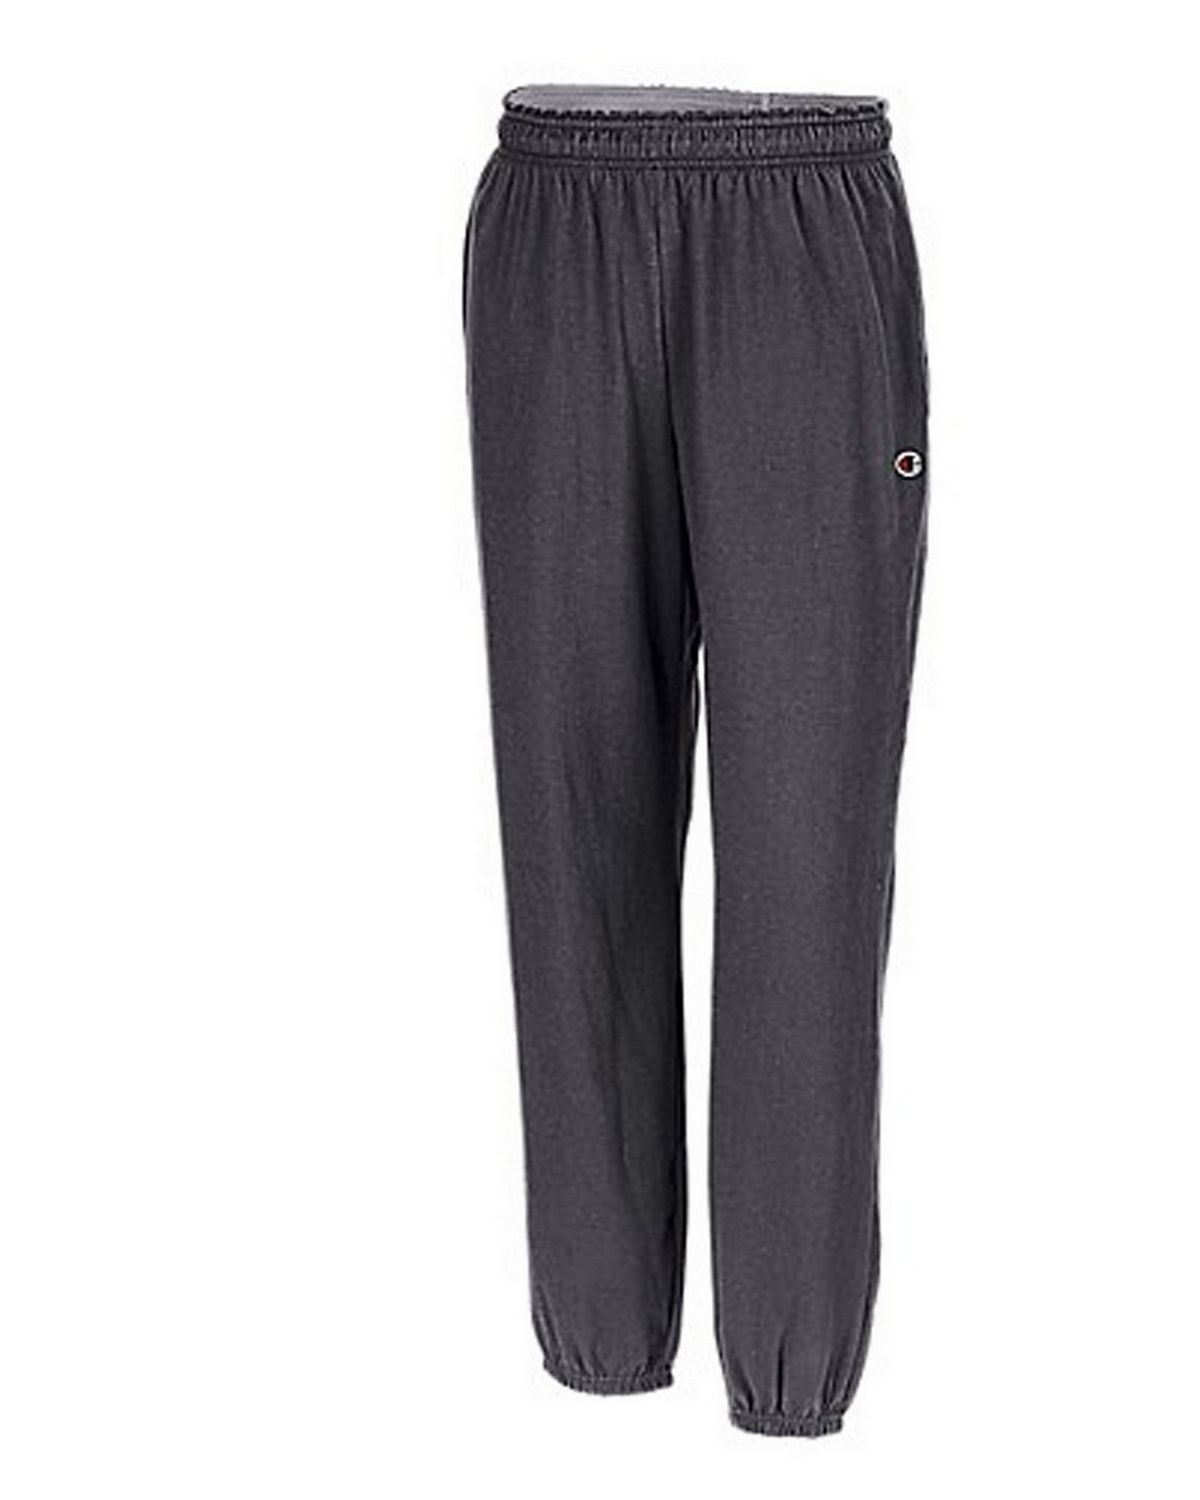 Champion P7310 Authentic Closed Bottom Jersey Pants - Oxford Grey - M P7310